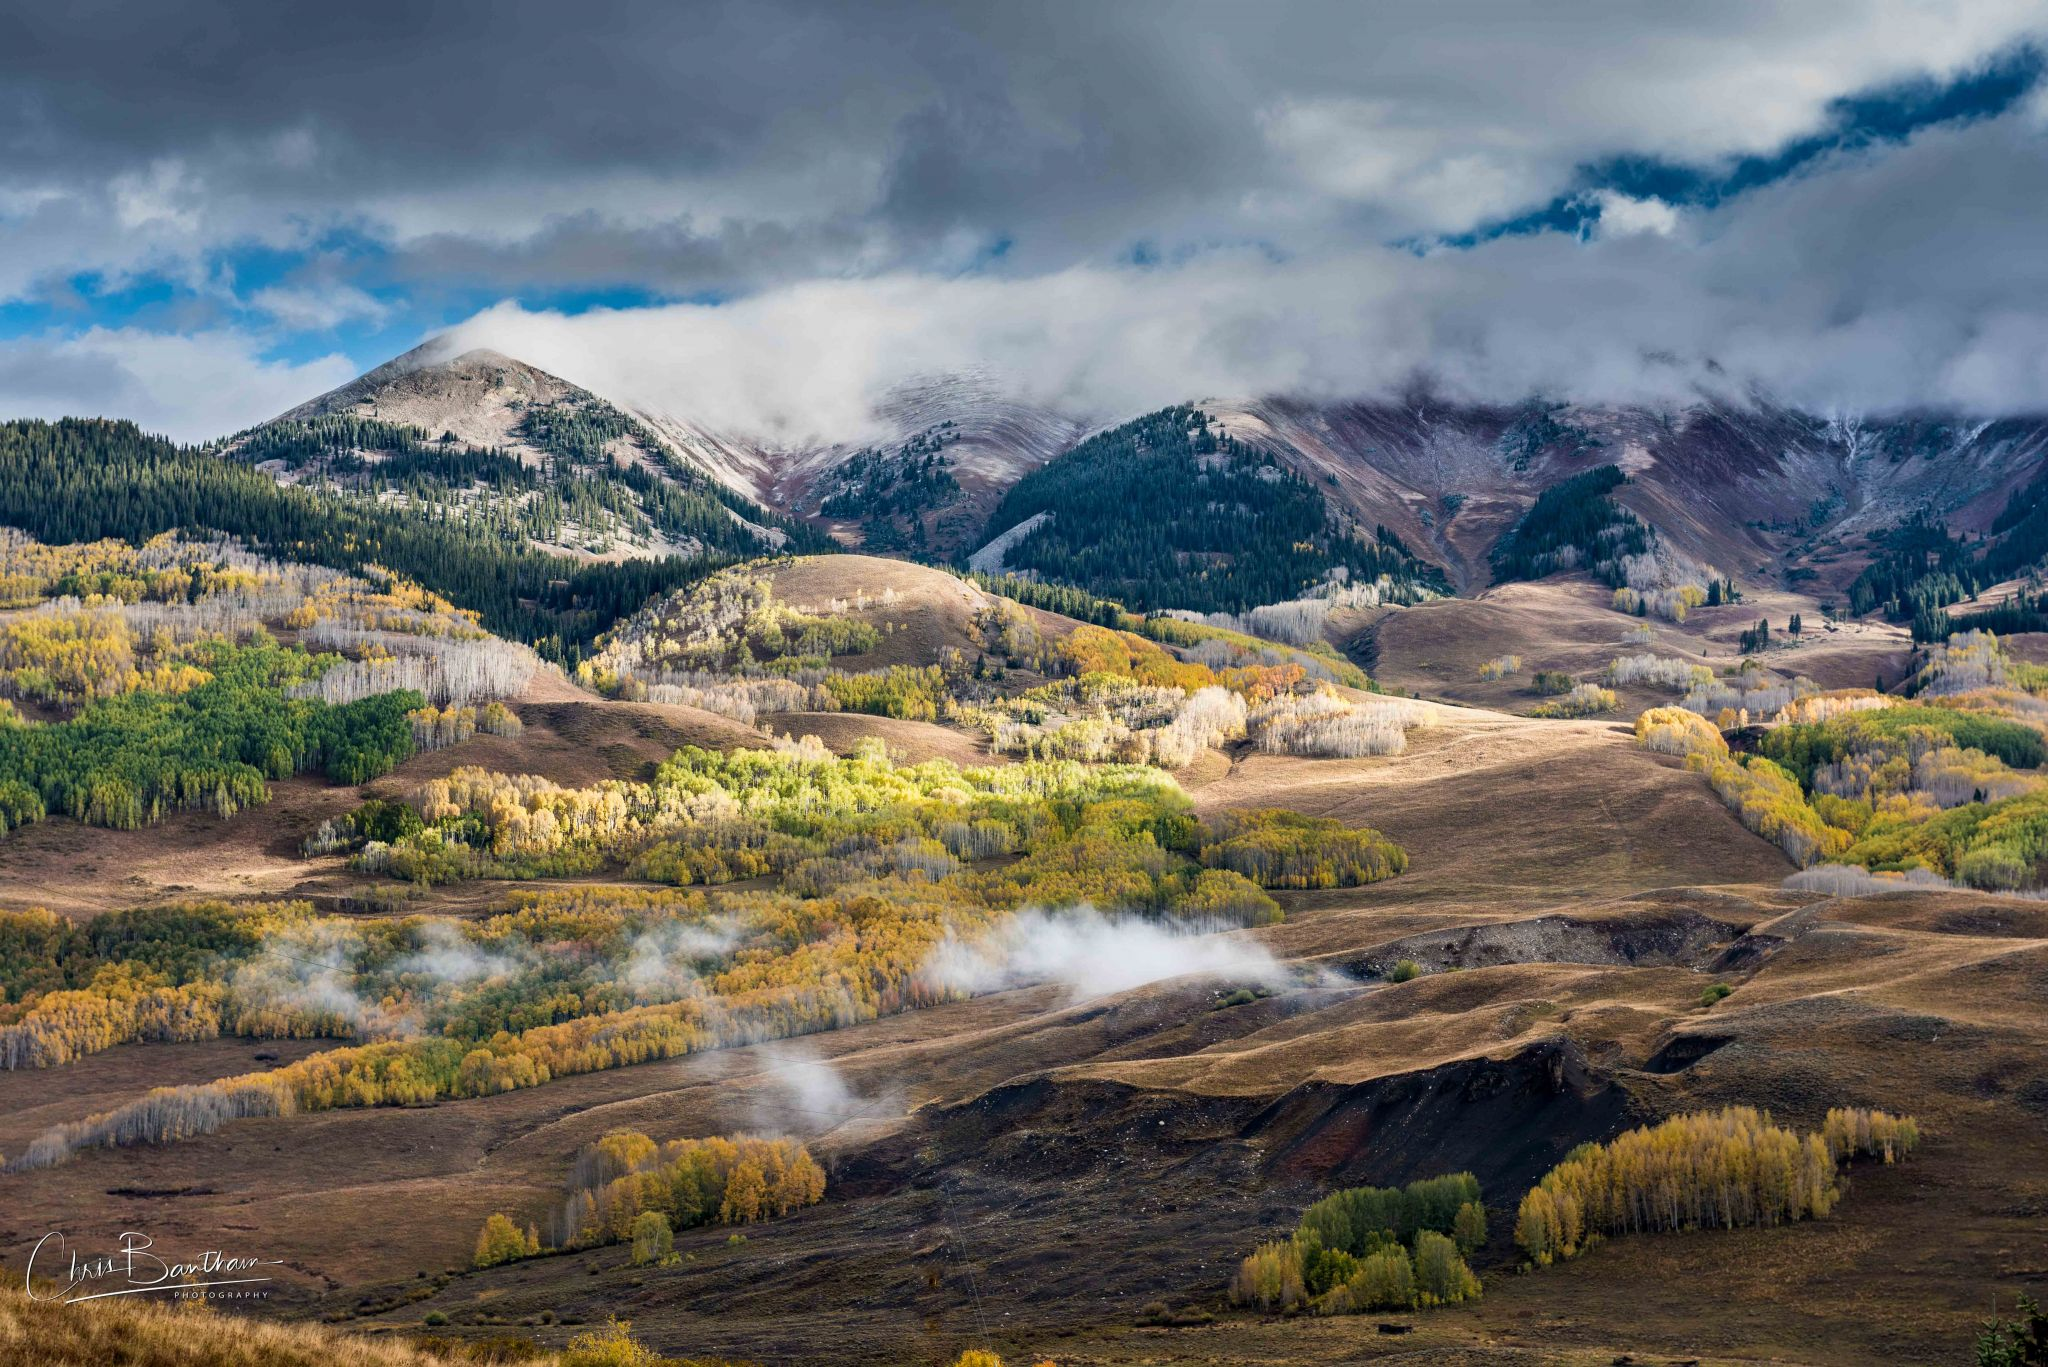 North of Mt Crested Butte, USA